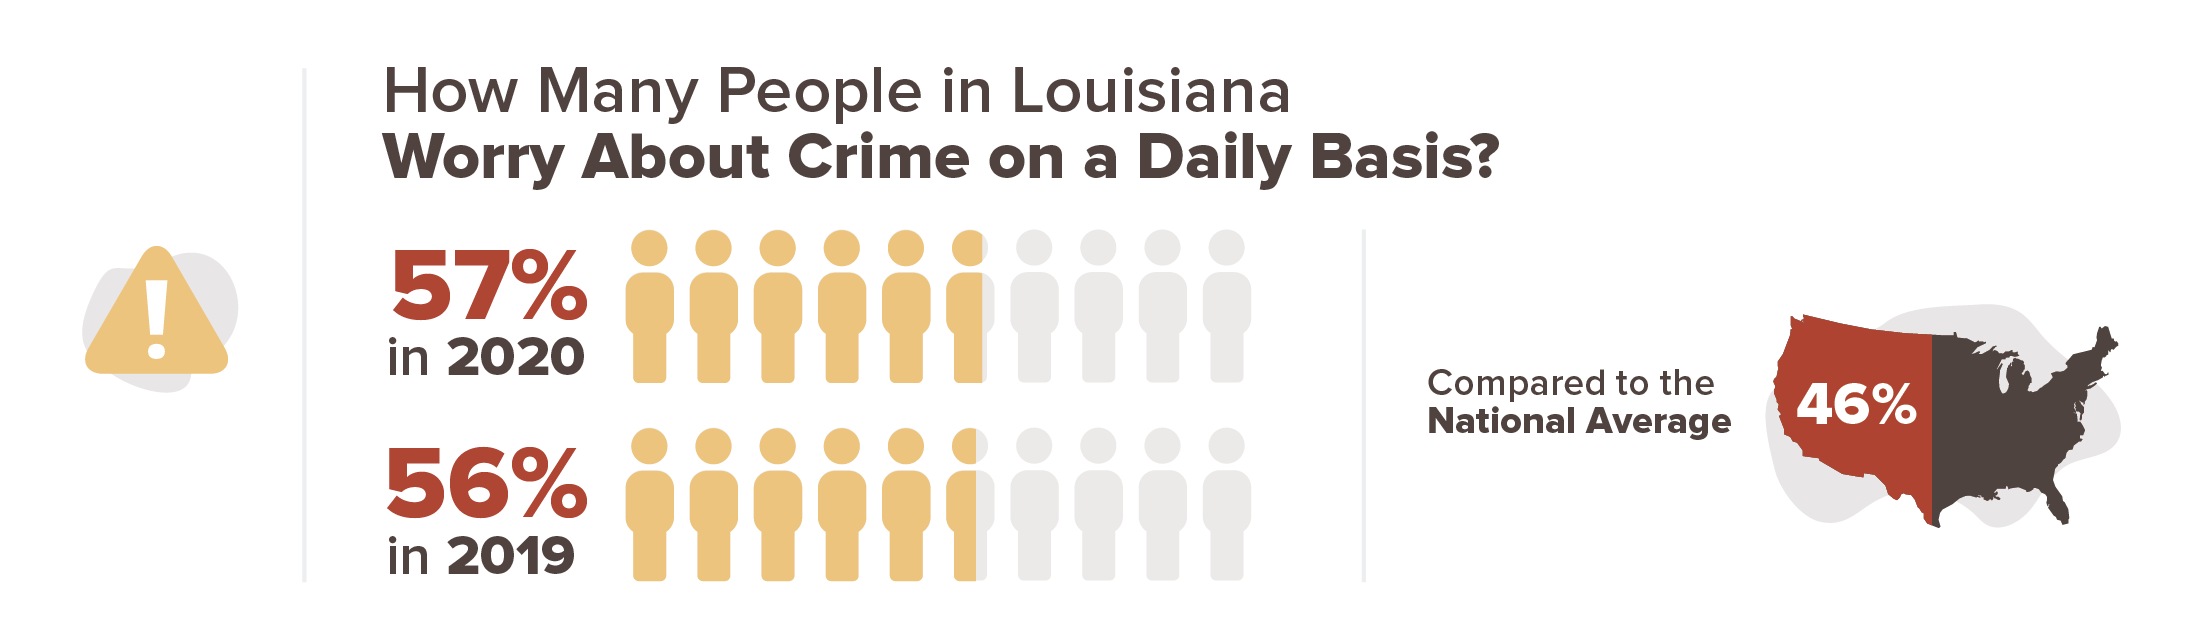 57% of people in Louisiana worry about crime on a daily basis in 2020 compared to 56% in 2019.